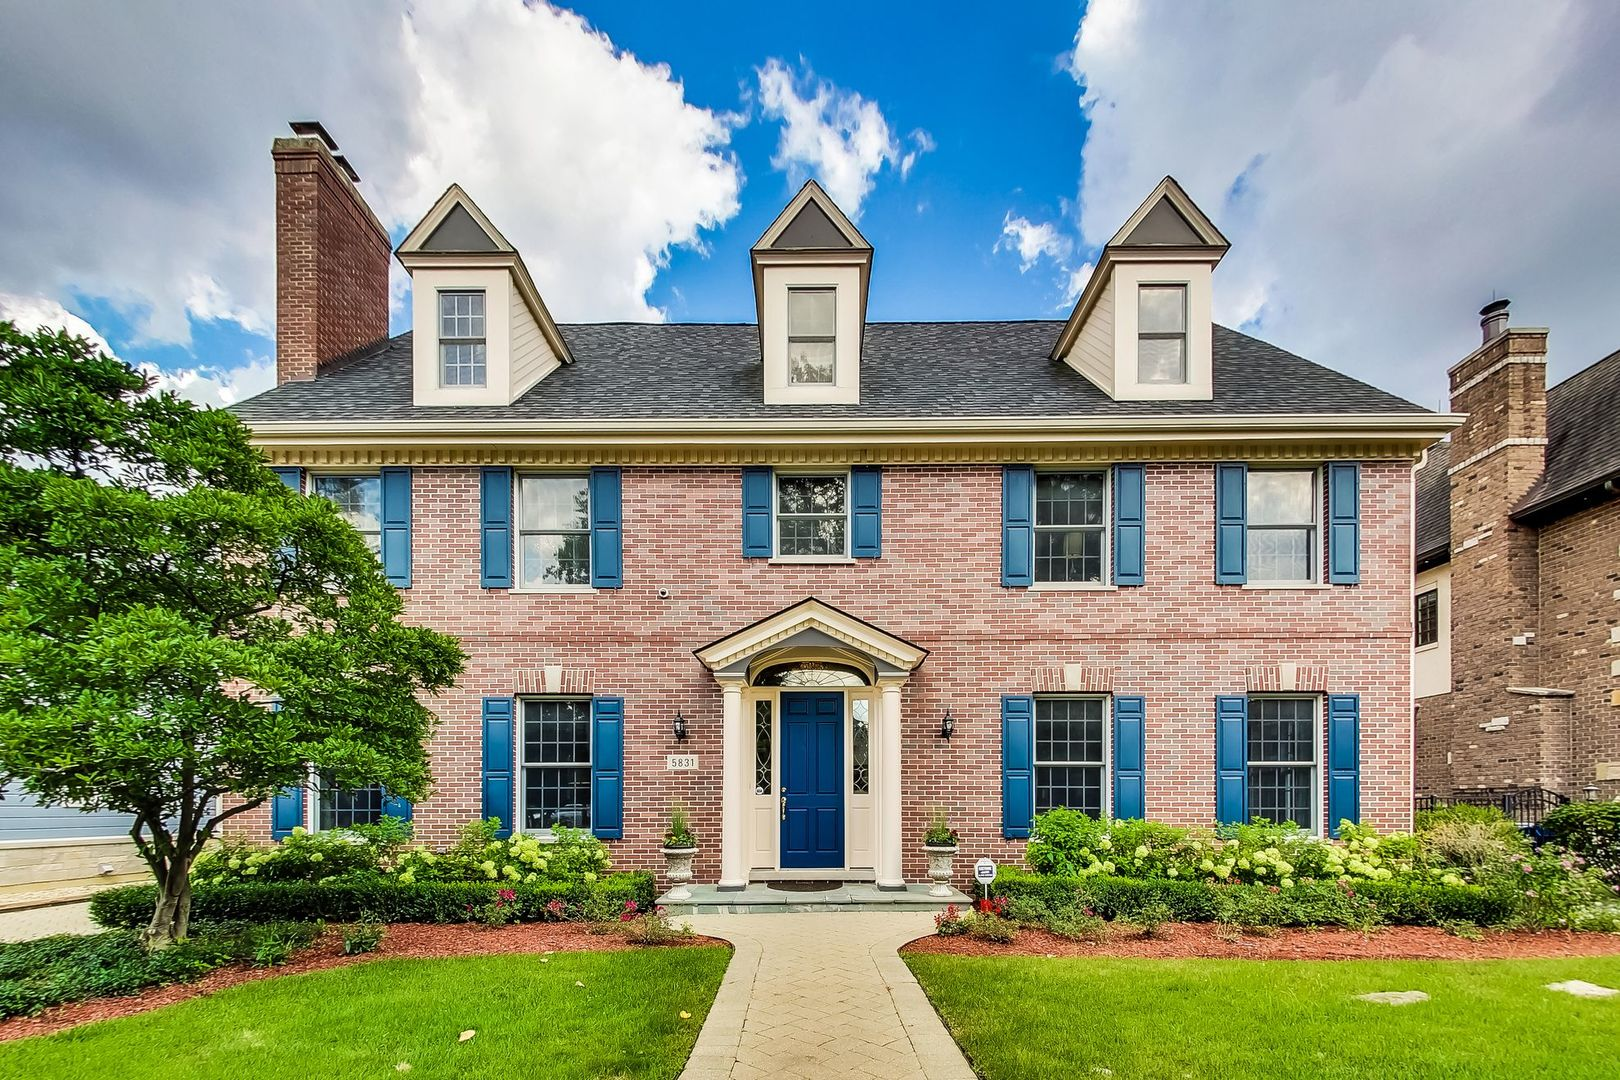 5831 South Grant Street, Hinsdale, Illinois 60521